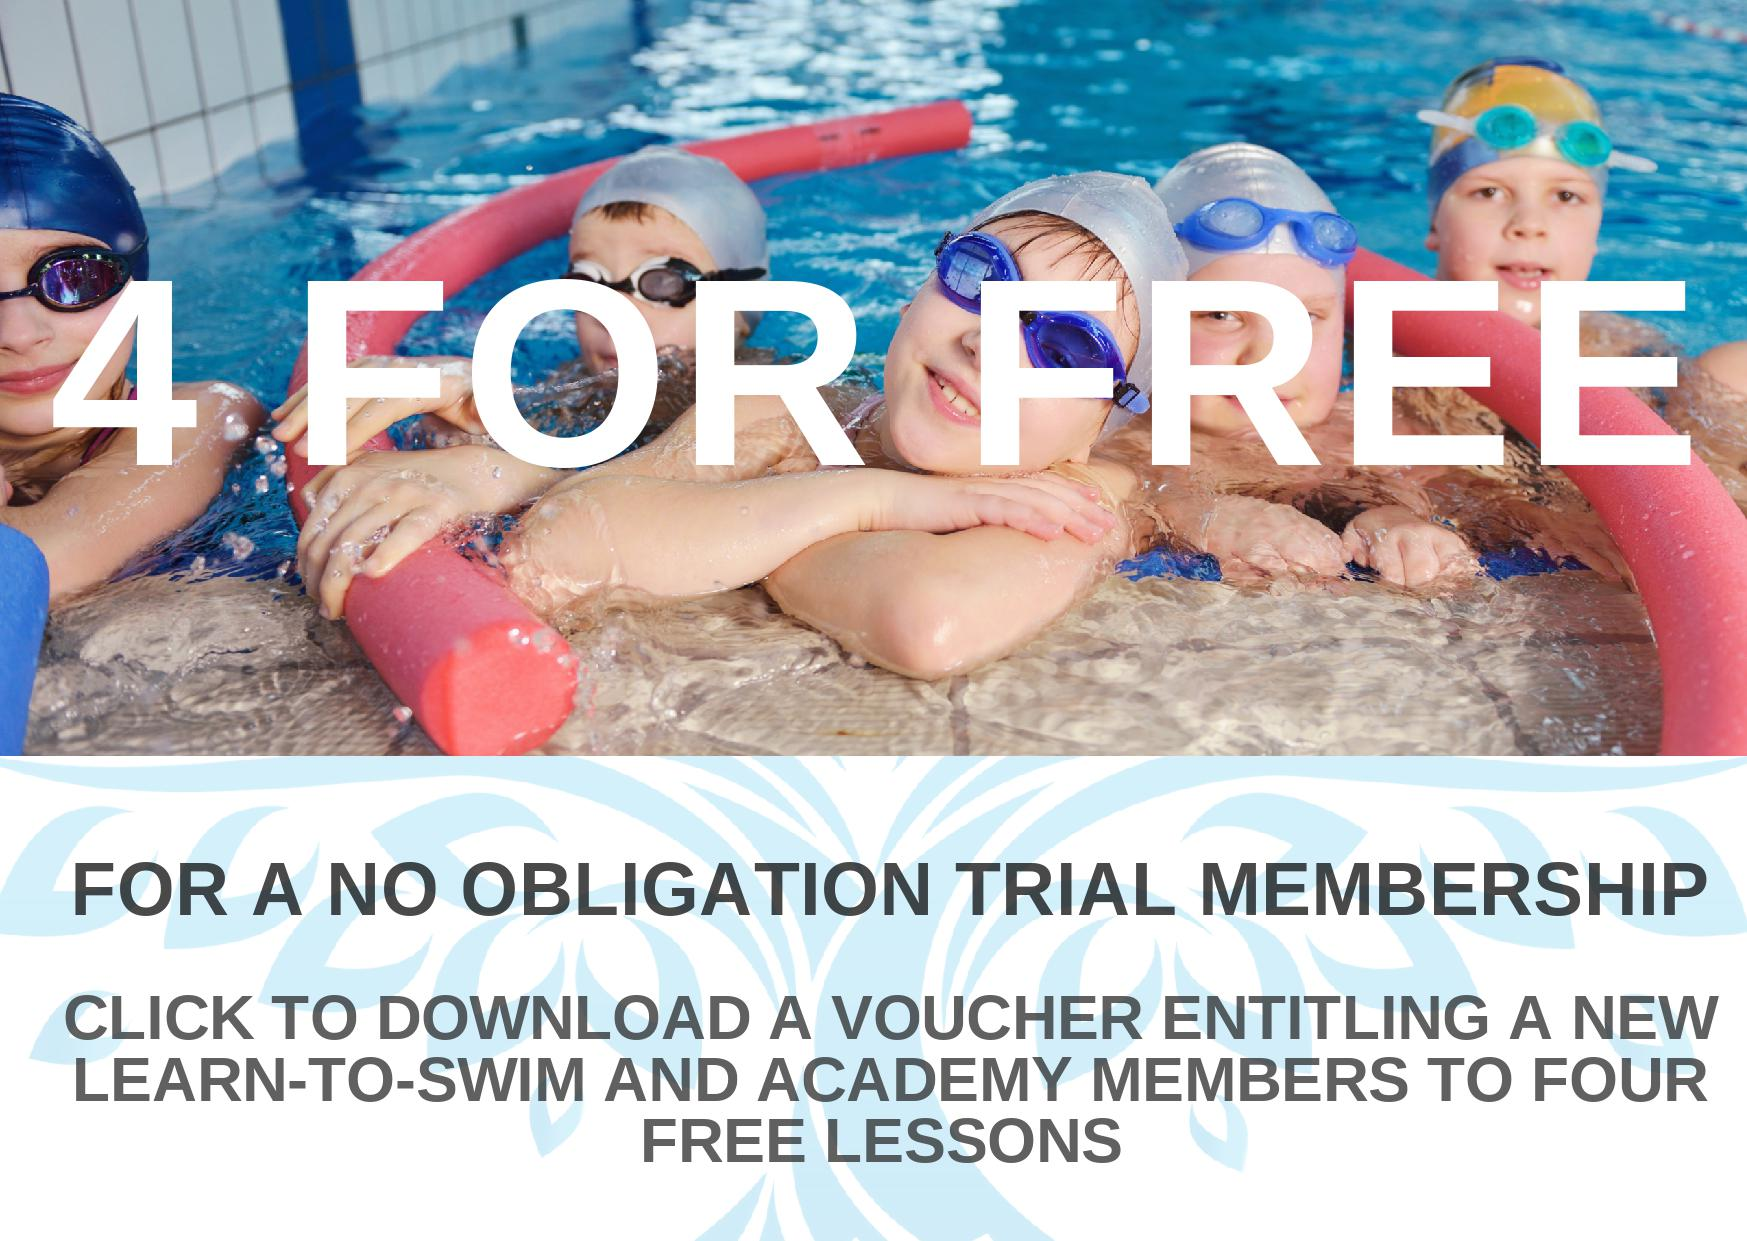 WFSC 4-FOR-FREE OFFER ~ FOUR FREE LESSON WHEN YOU JOIN OUR LTS OR ACADEMY SQAUDS